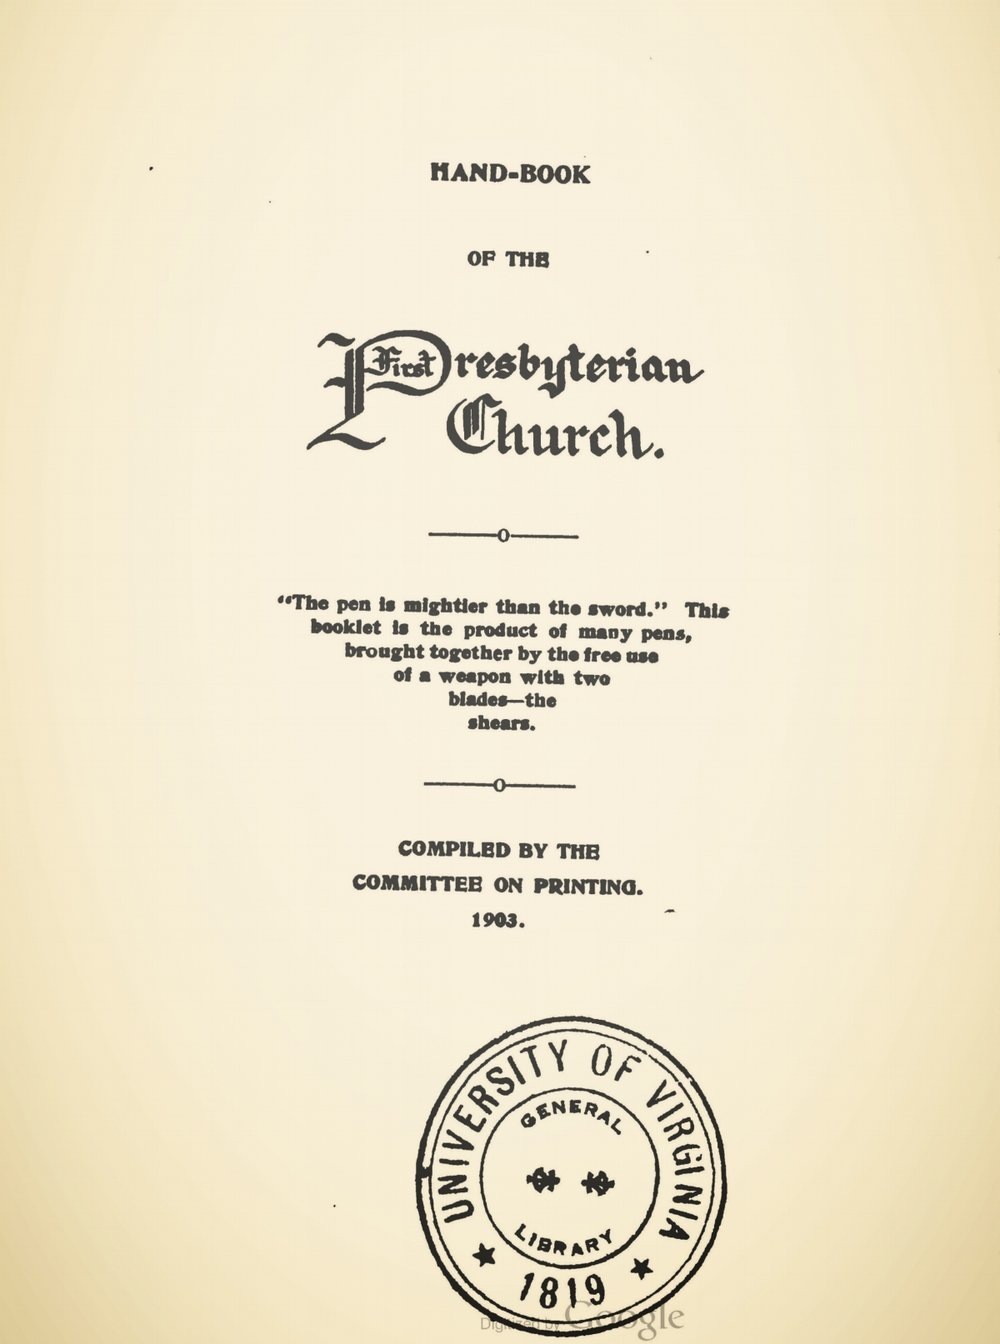 Waddell, Joseph Addison, Hand-book of the First Presbyterian Church, Staunton, VA Title Page.jpg